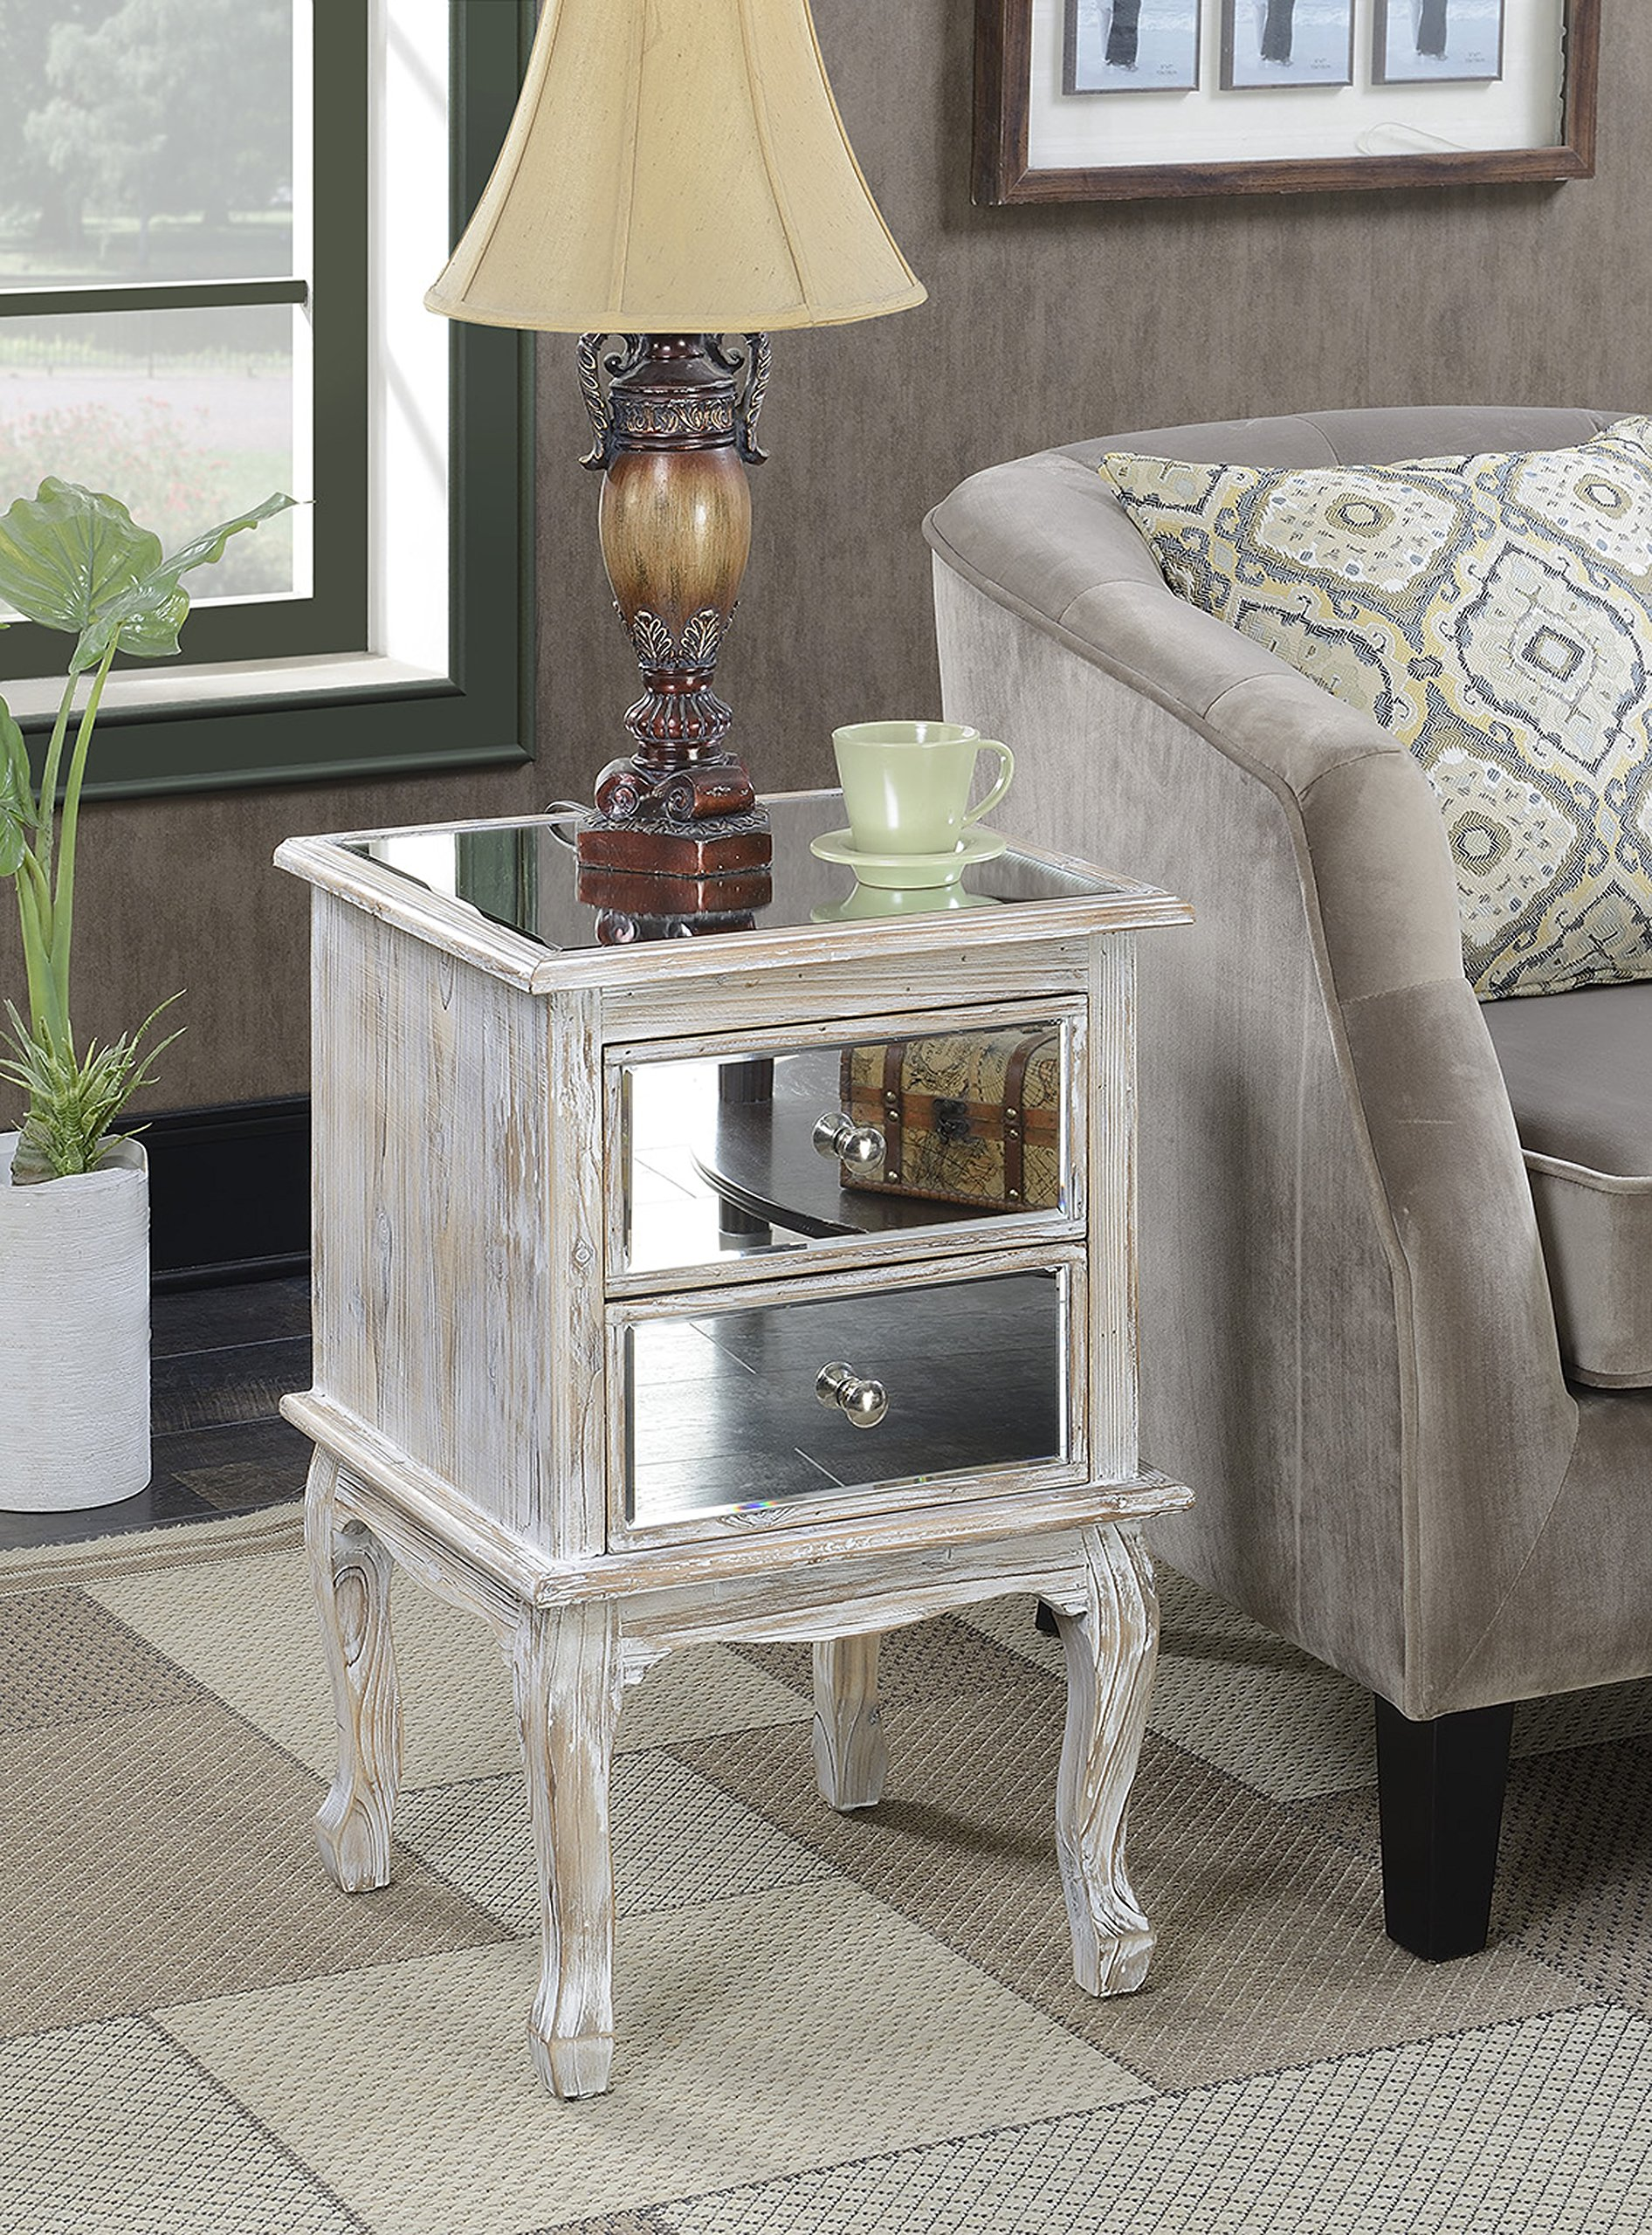 Convenience Concepts Gold Coast Collection Queen Anne Mirrored End Table, Weathered White